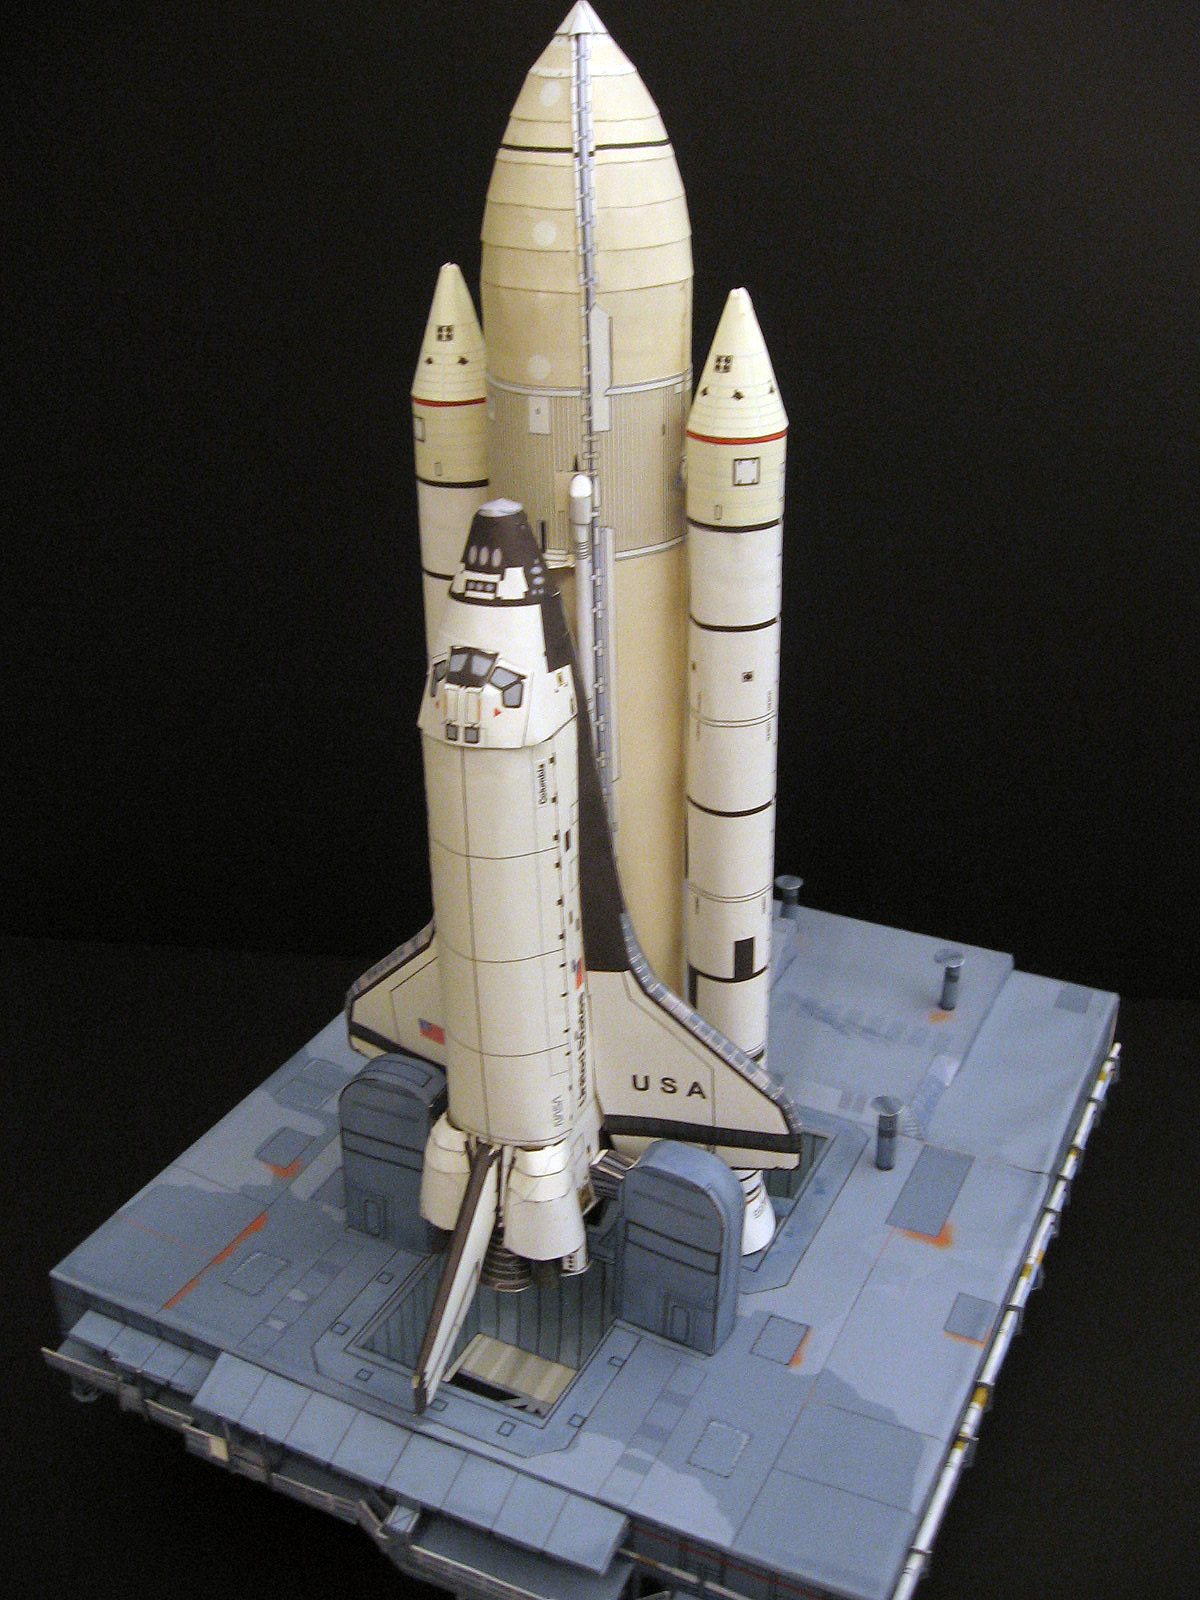 space shuttle essay - photo #1